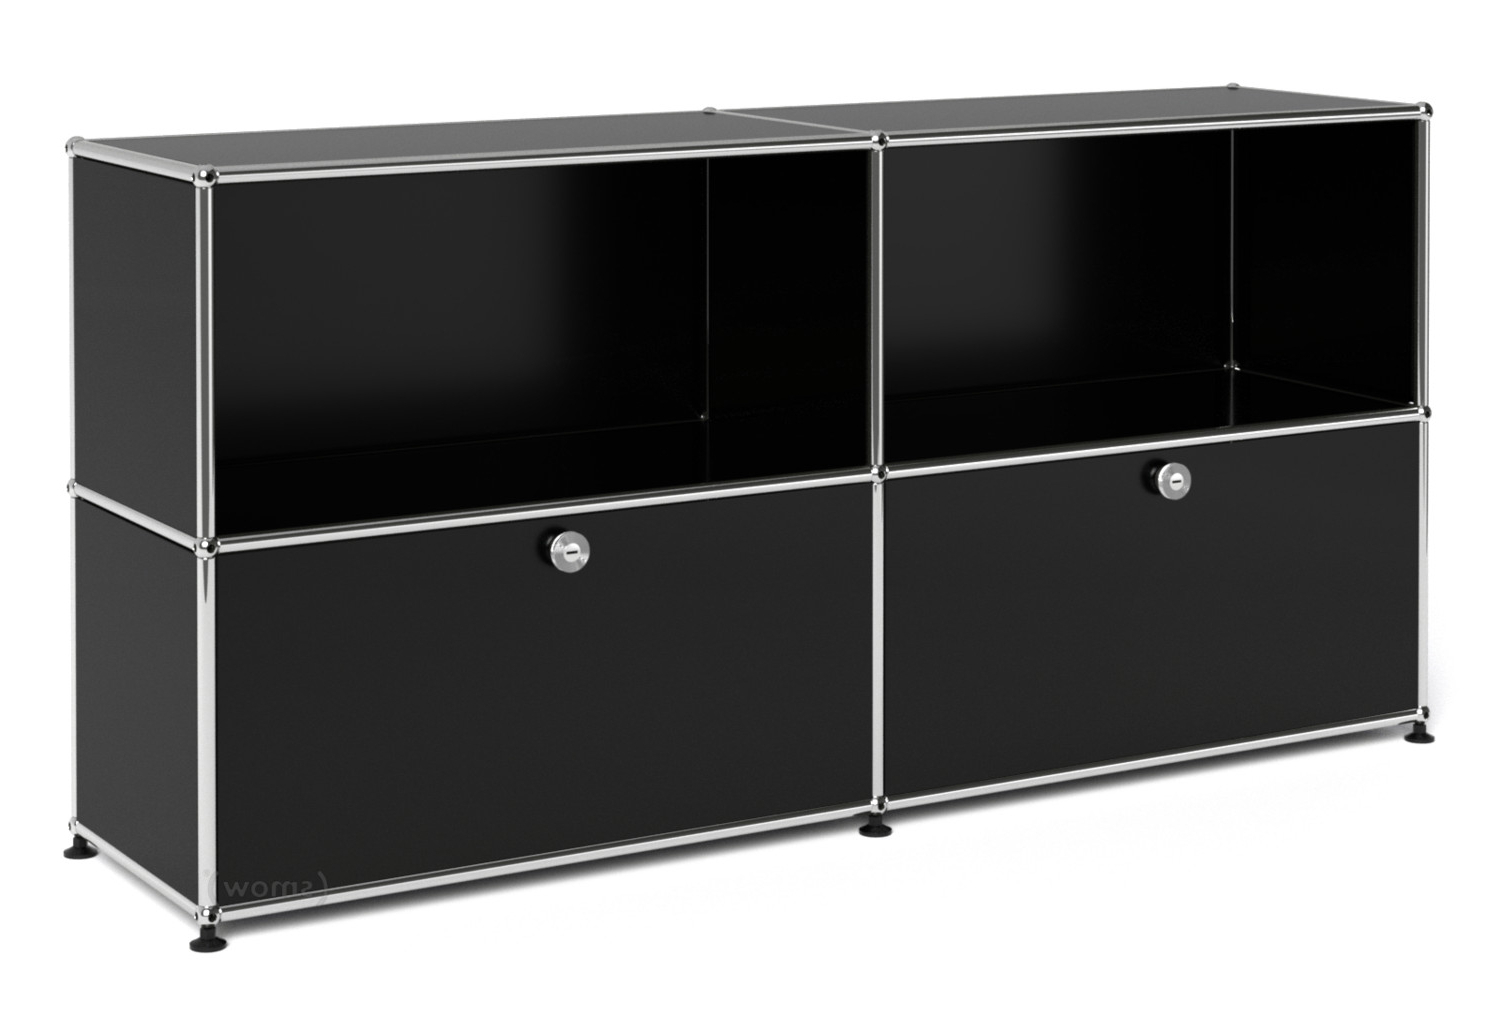 Well Known Usm Haller Sideboard L With 2 Drop Down Doorsfritz Haller & Paul Inside Girard 4 Door Sideboards (Gallery 3 of 20)